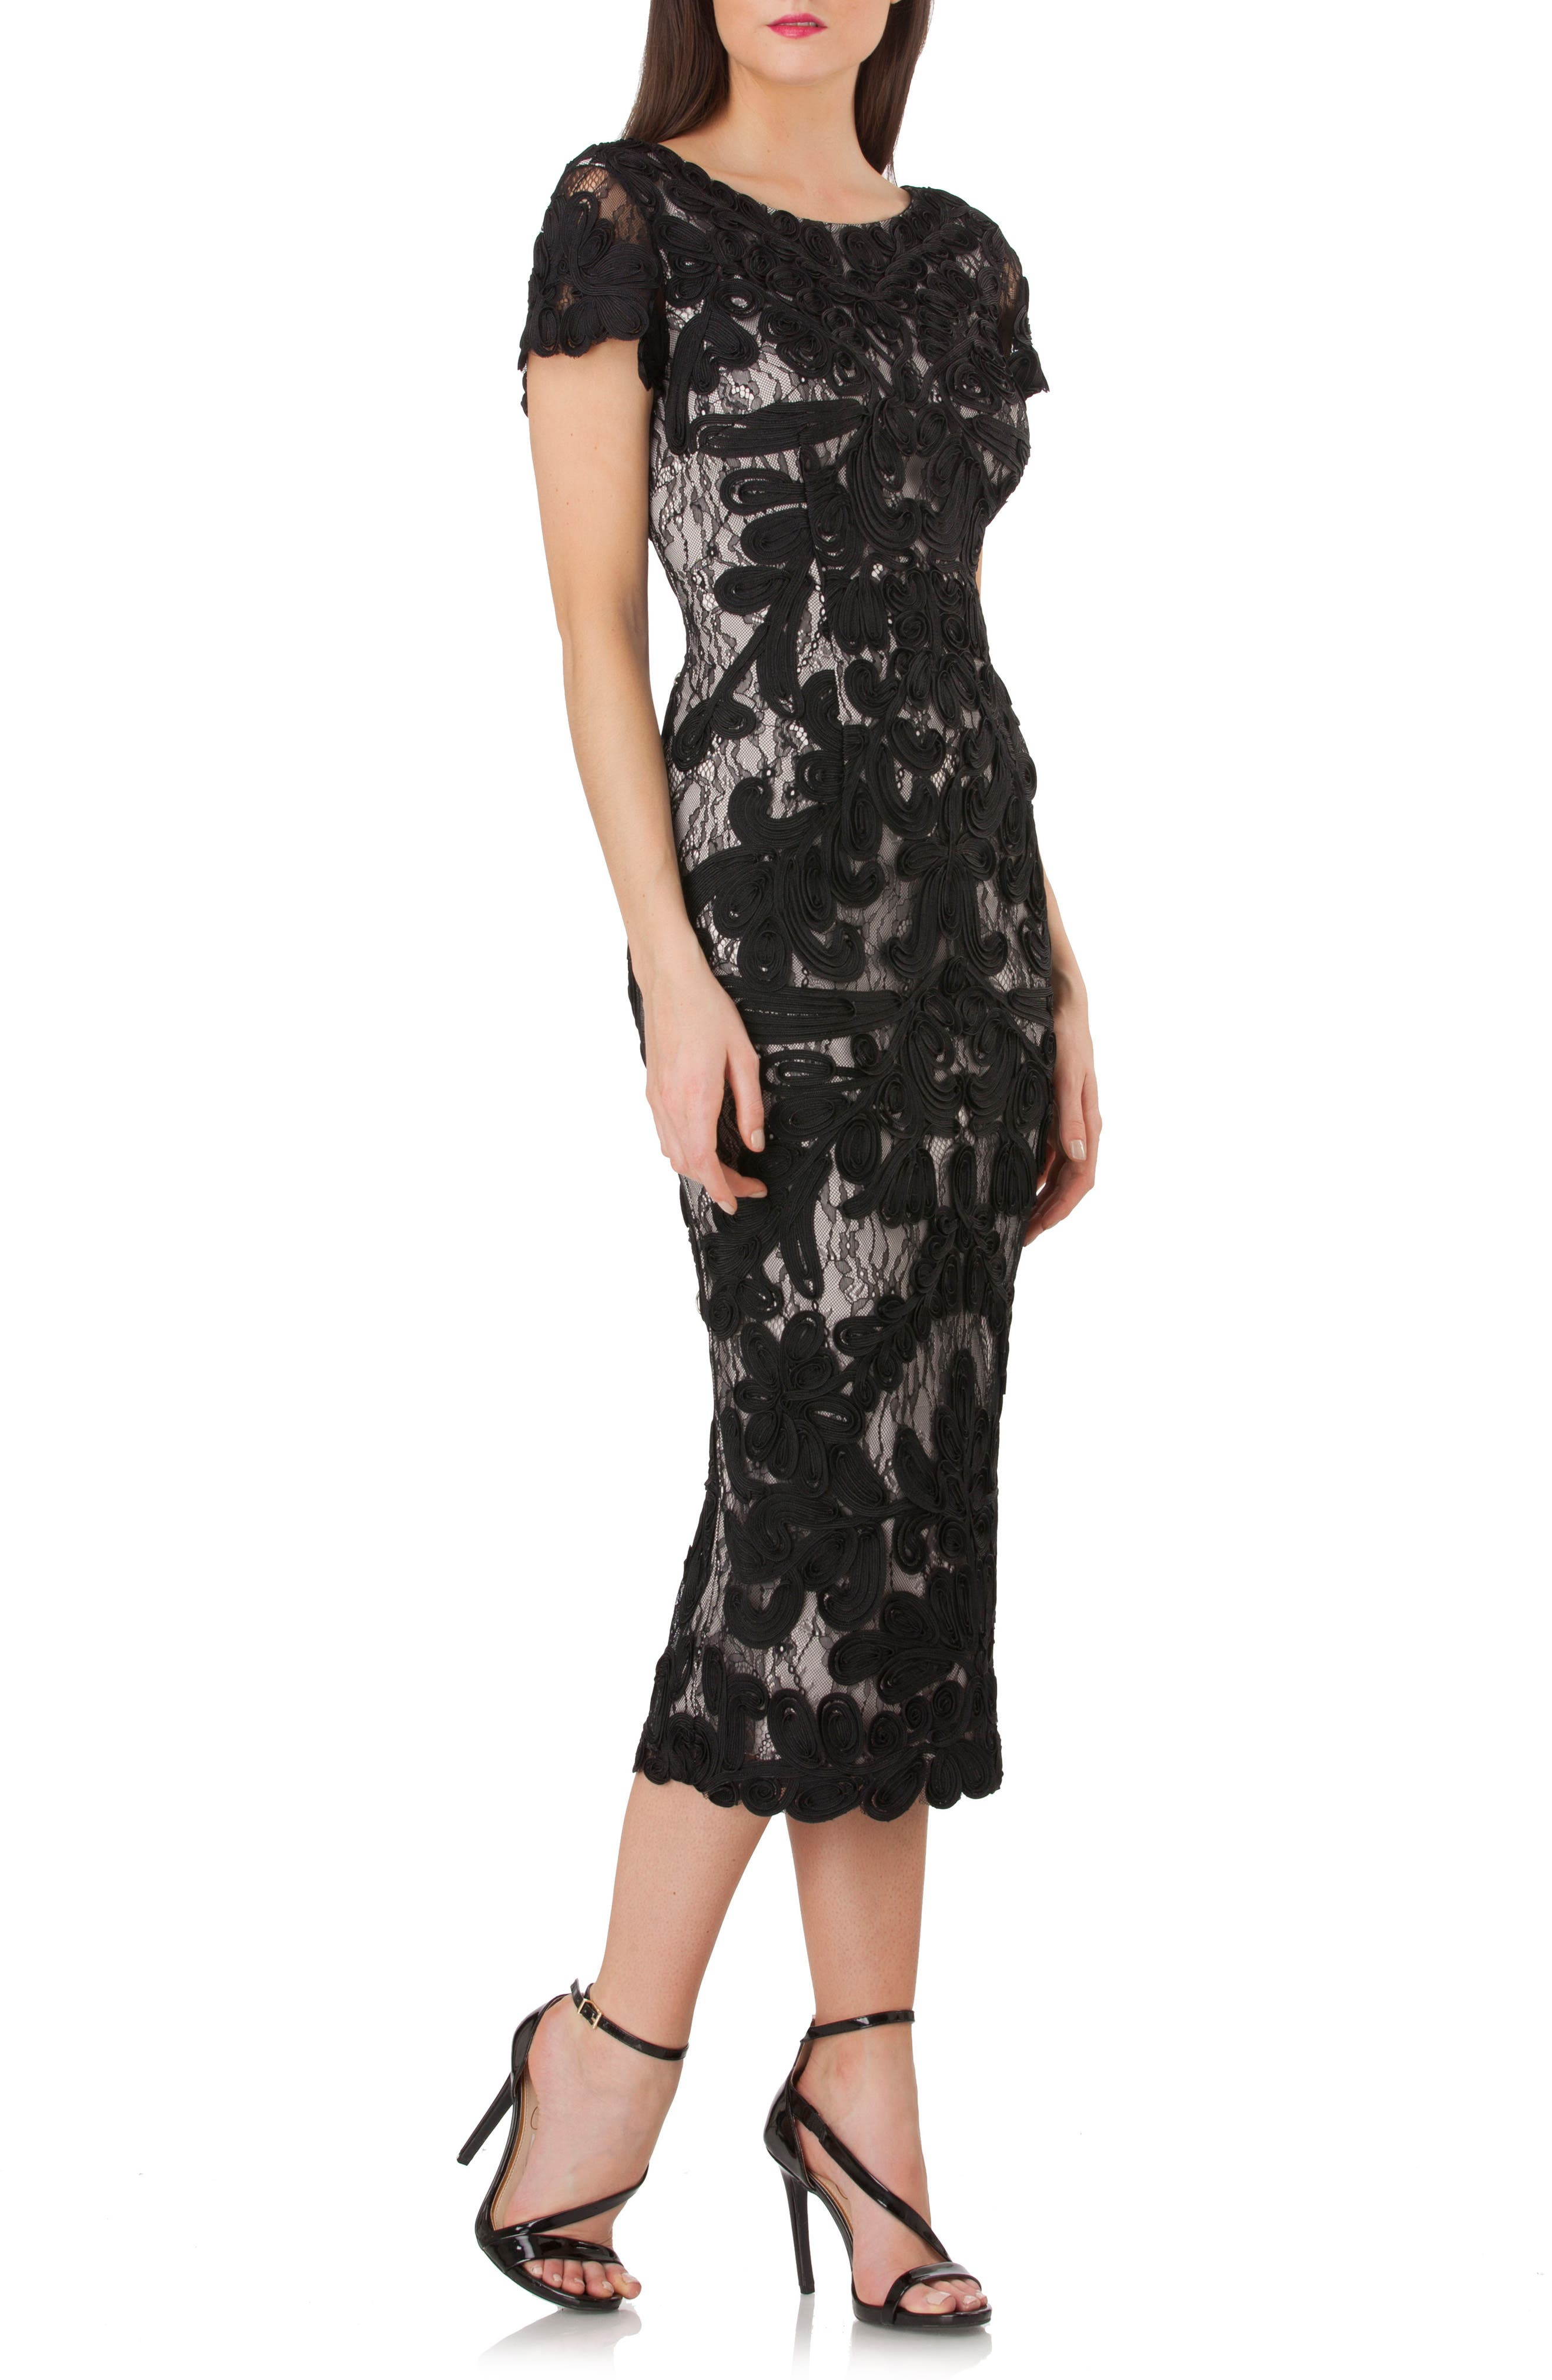 Vintage Cocktail Dresses, Party Dresses Womens Js Collections Soutache Lace Midi Dress Size 10 - Black $348.00 AT vintagedancer.com